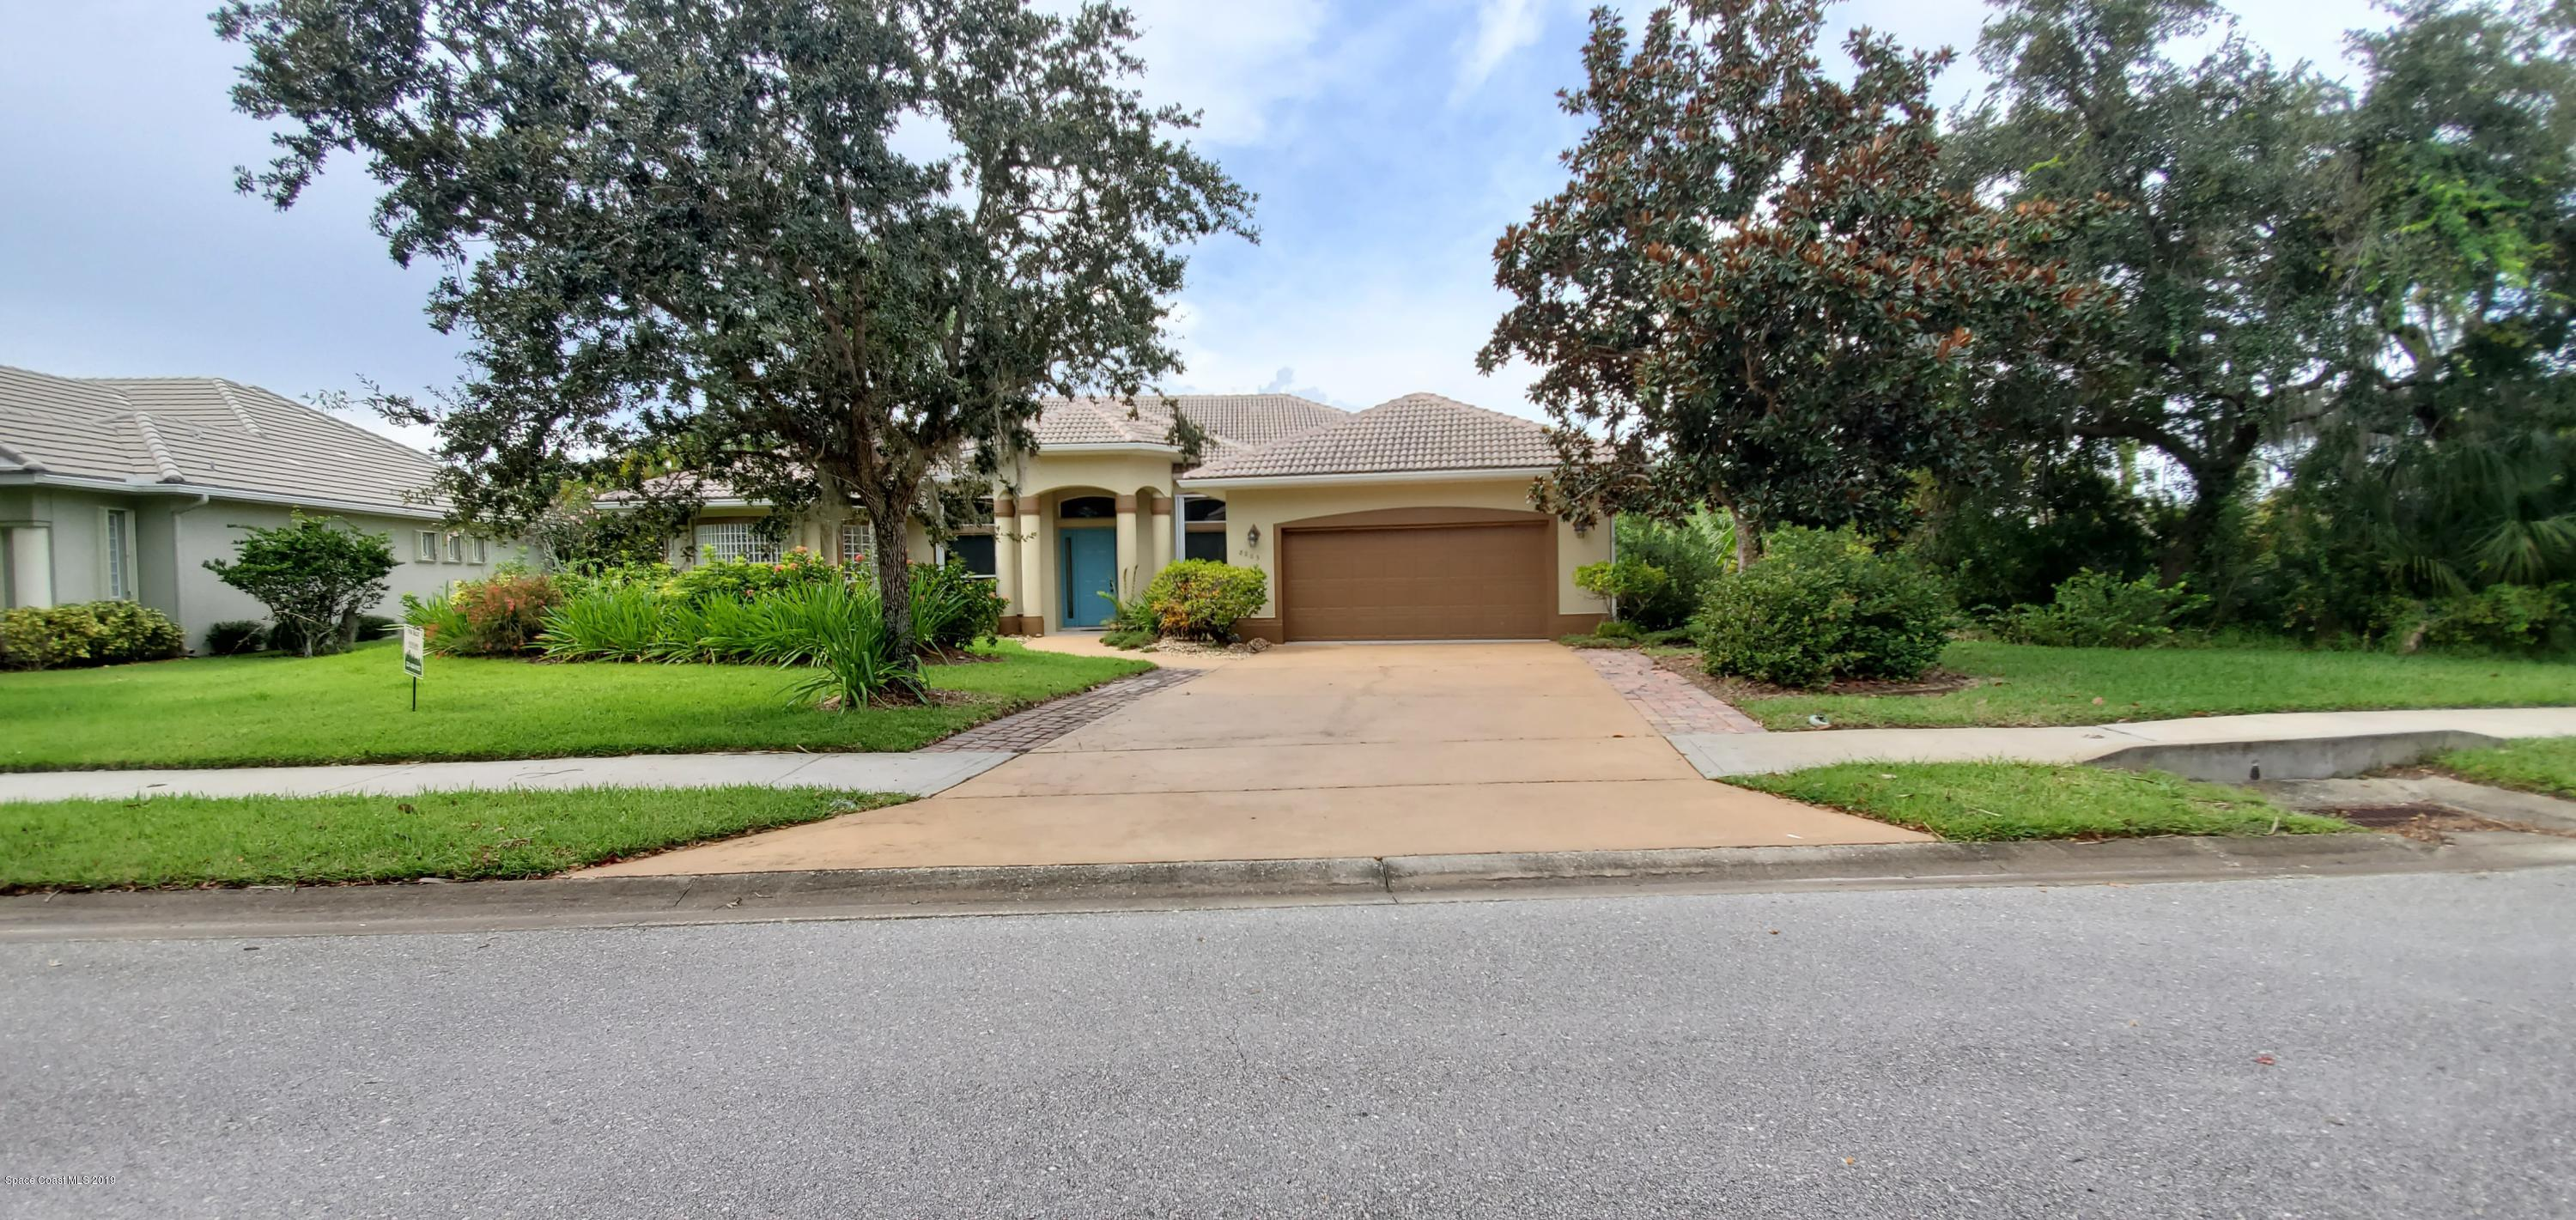 Single Family Homes for Sale at 8203 National Melbourne, Florida 32940 United States